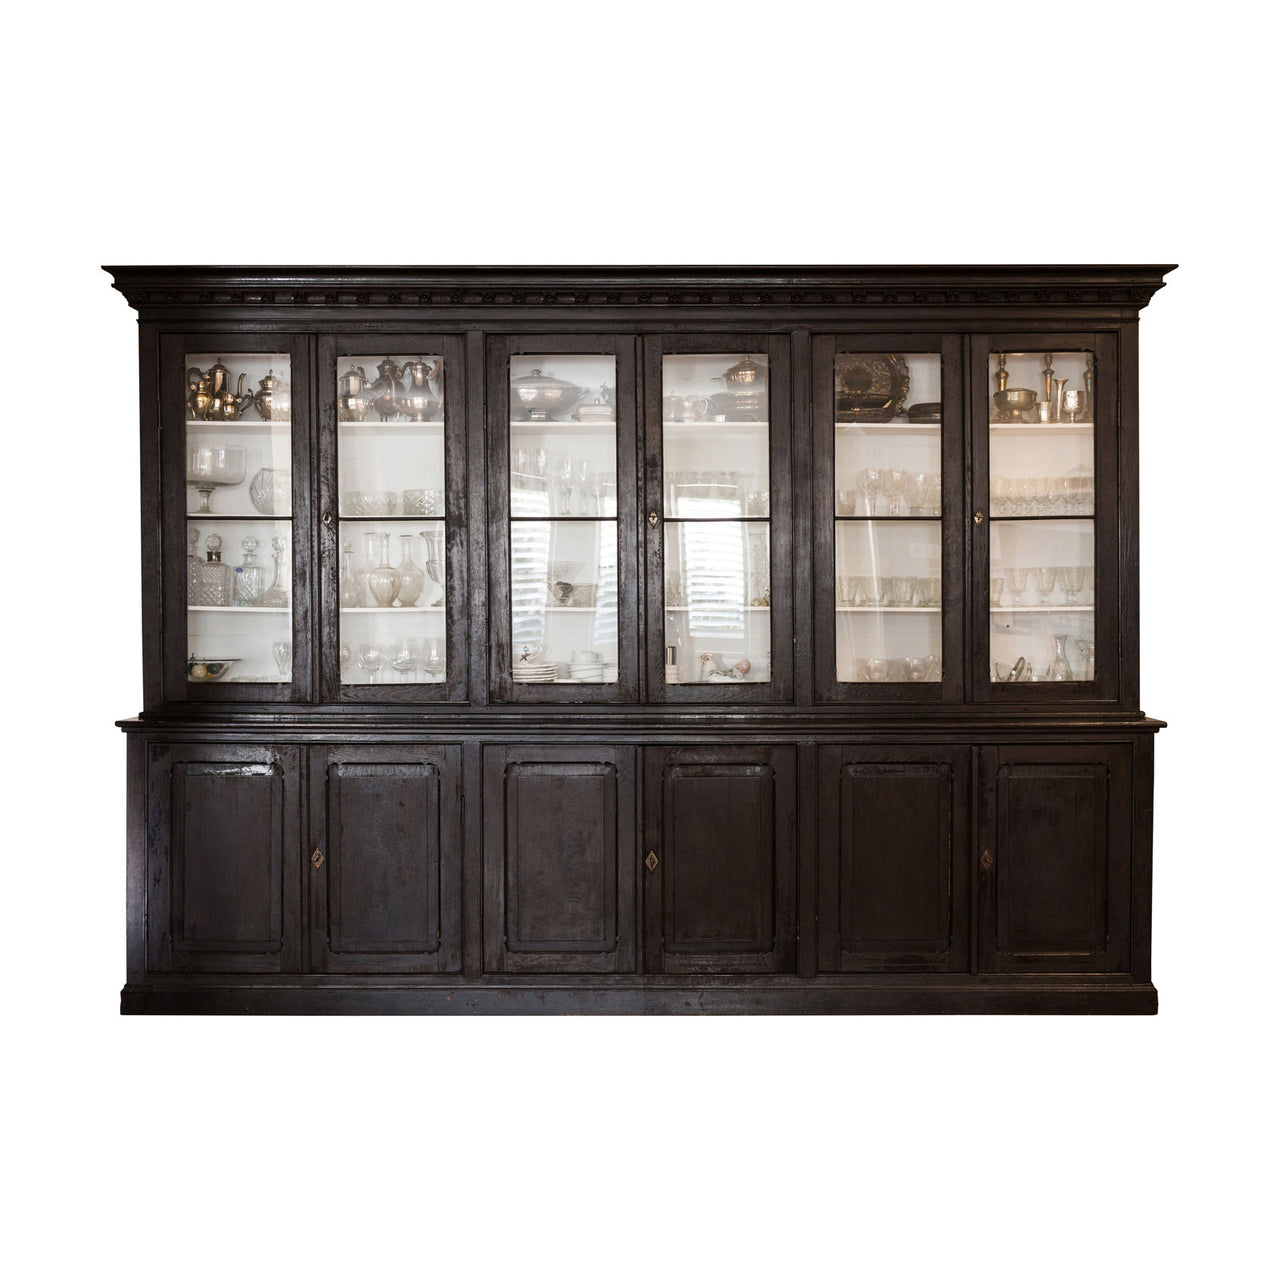 A Substantial Ebonised French Provincial Bookcase The